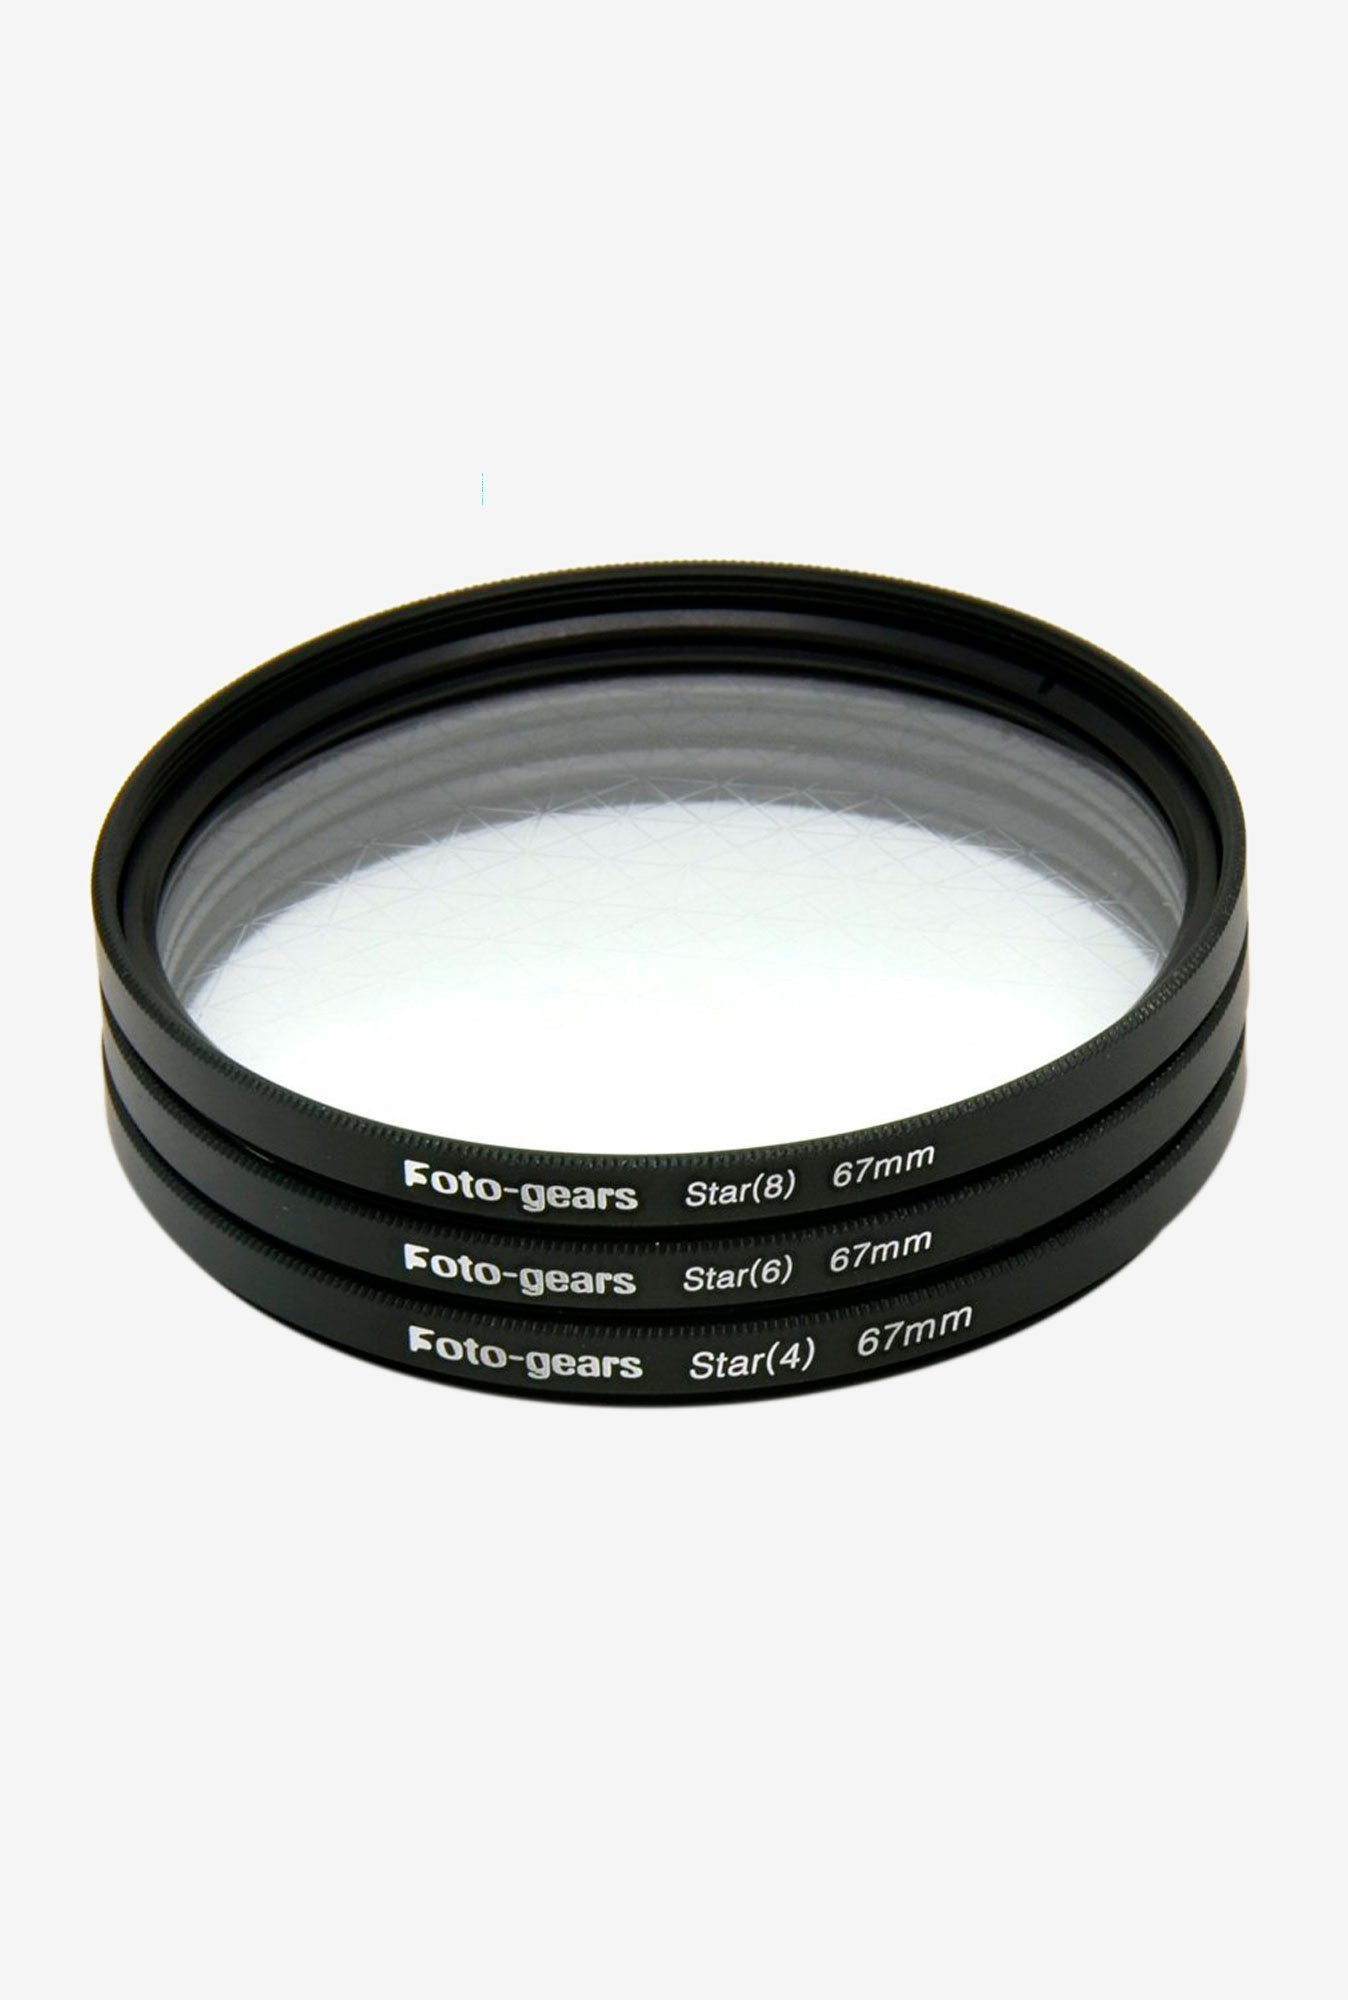 Mesenltd Foto-gears 67mm Star Effect Filter Black